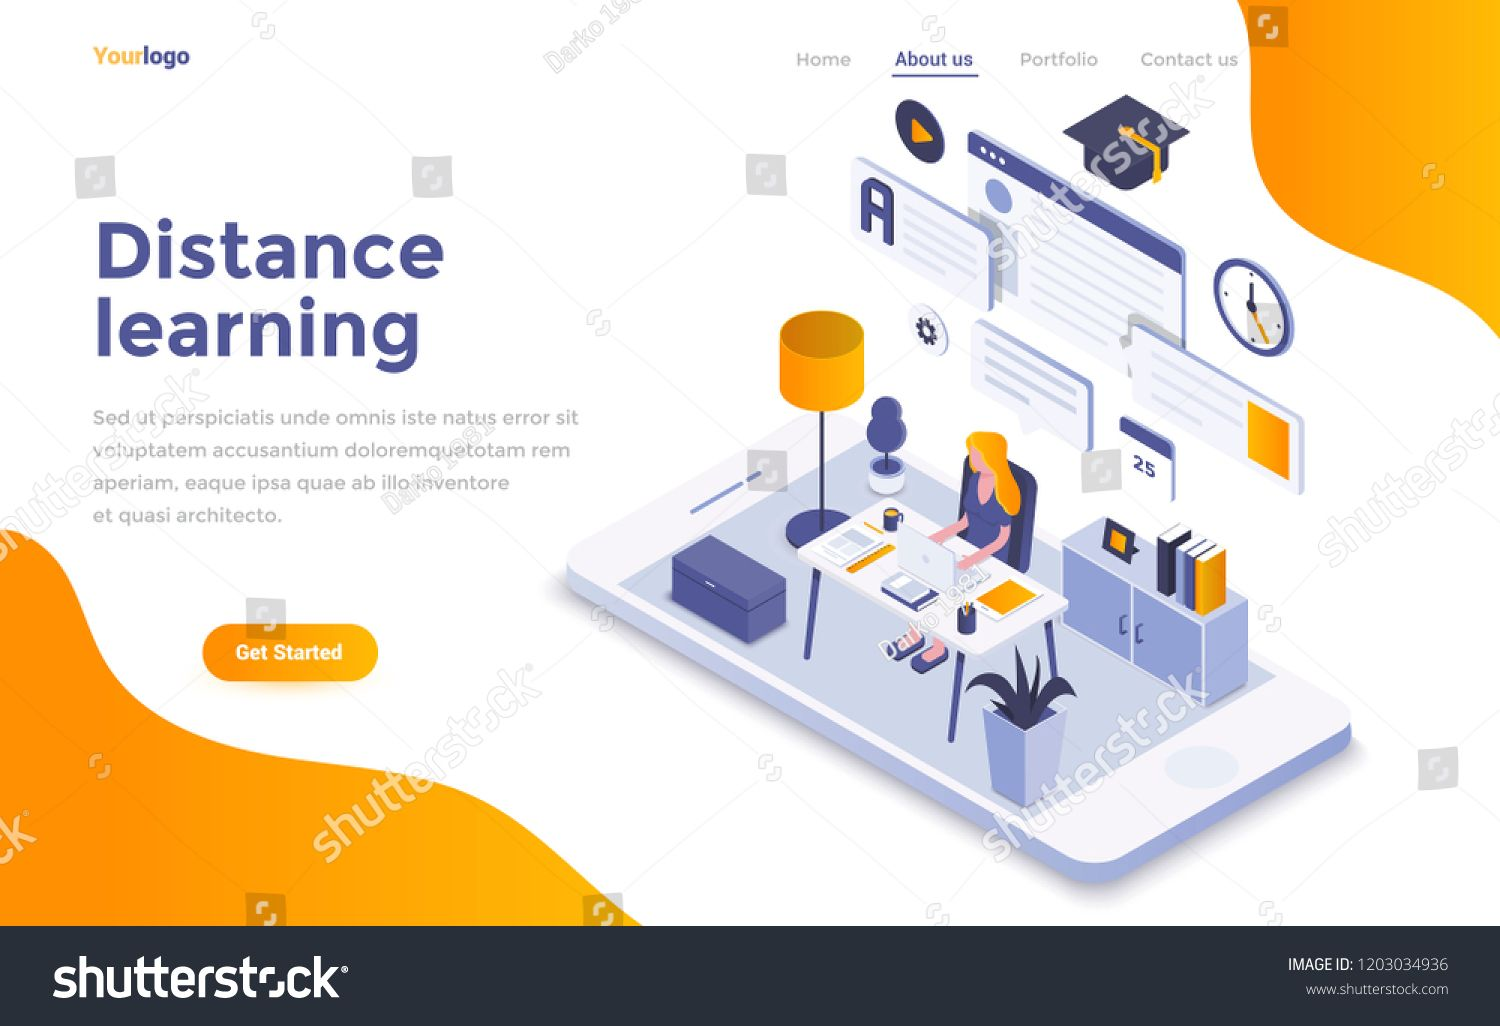 Cartoon Illustrations For Online Learning And Exam Via Mobile Apps Distance Learning Program For In 2020 Online Learning Distance Learning Programs Distance Learning